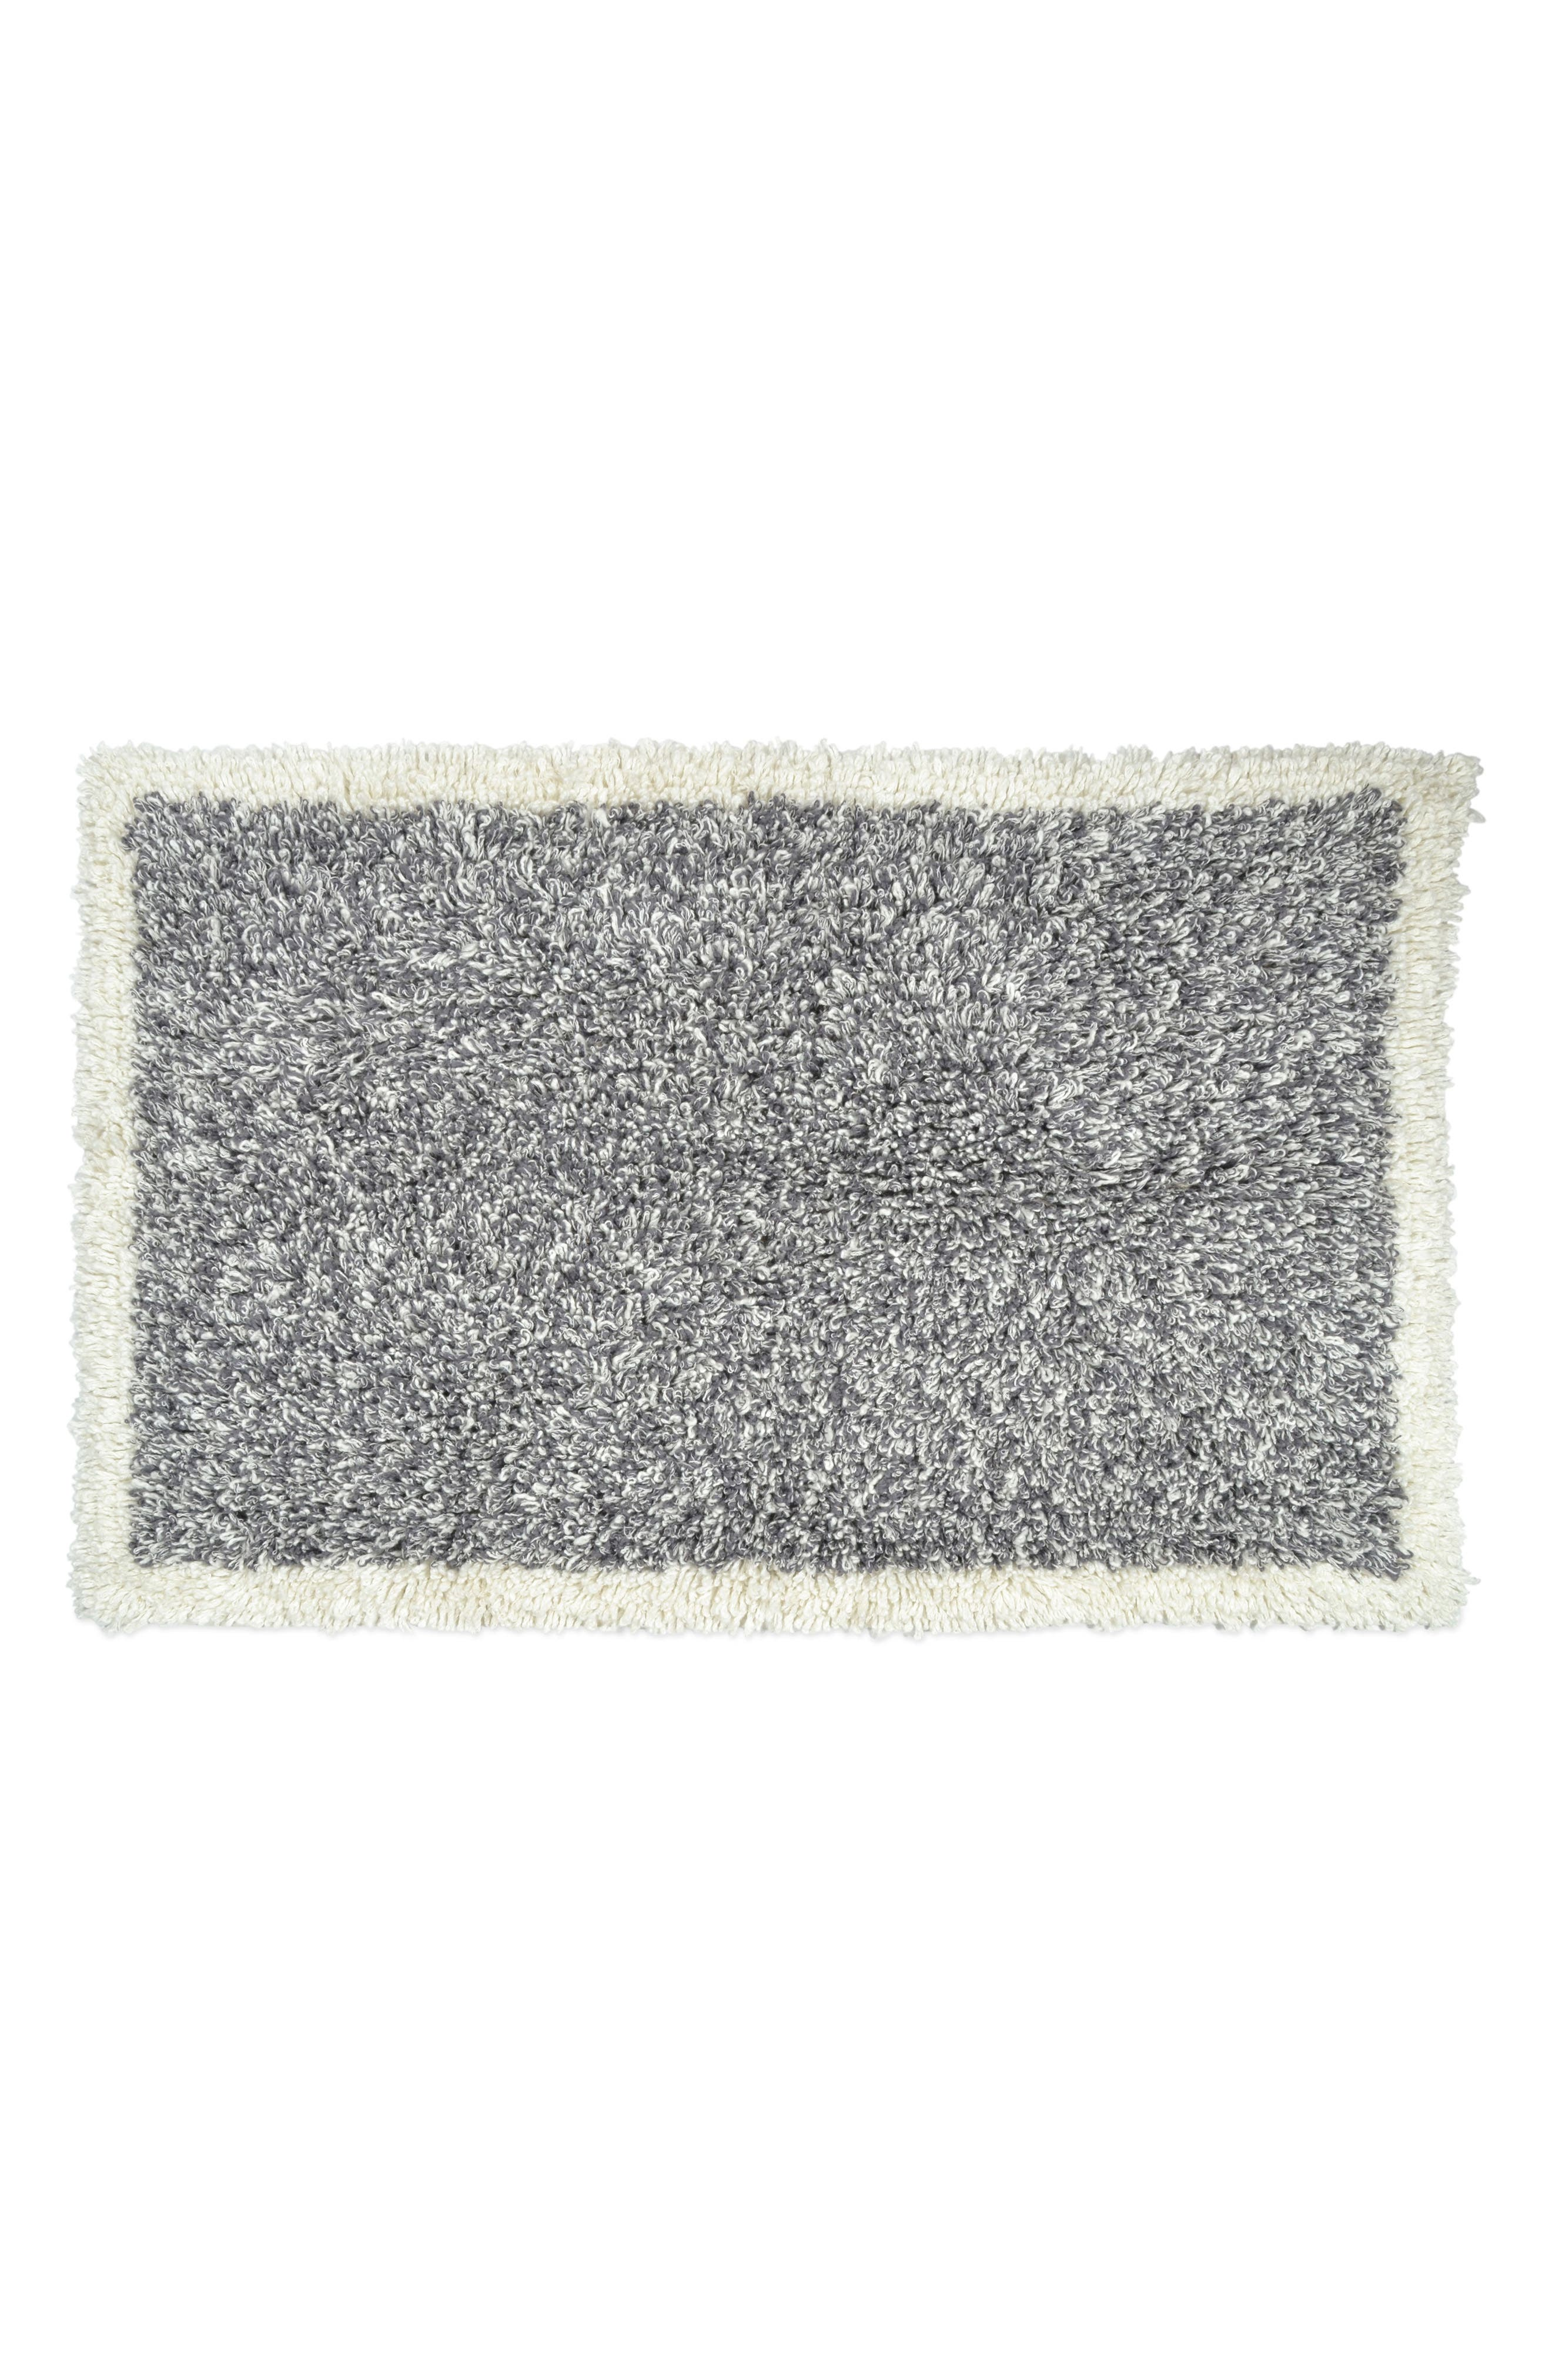 DKNY Pure Heathered Rug